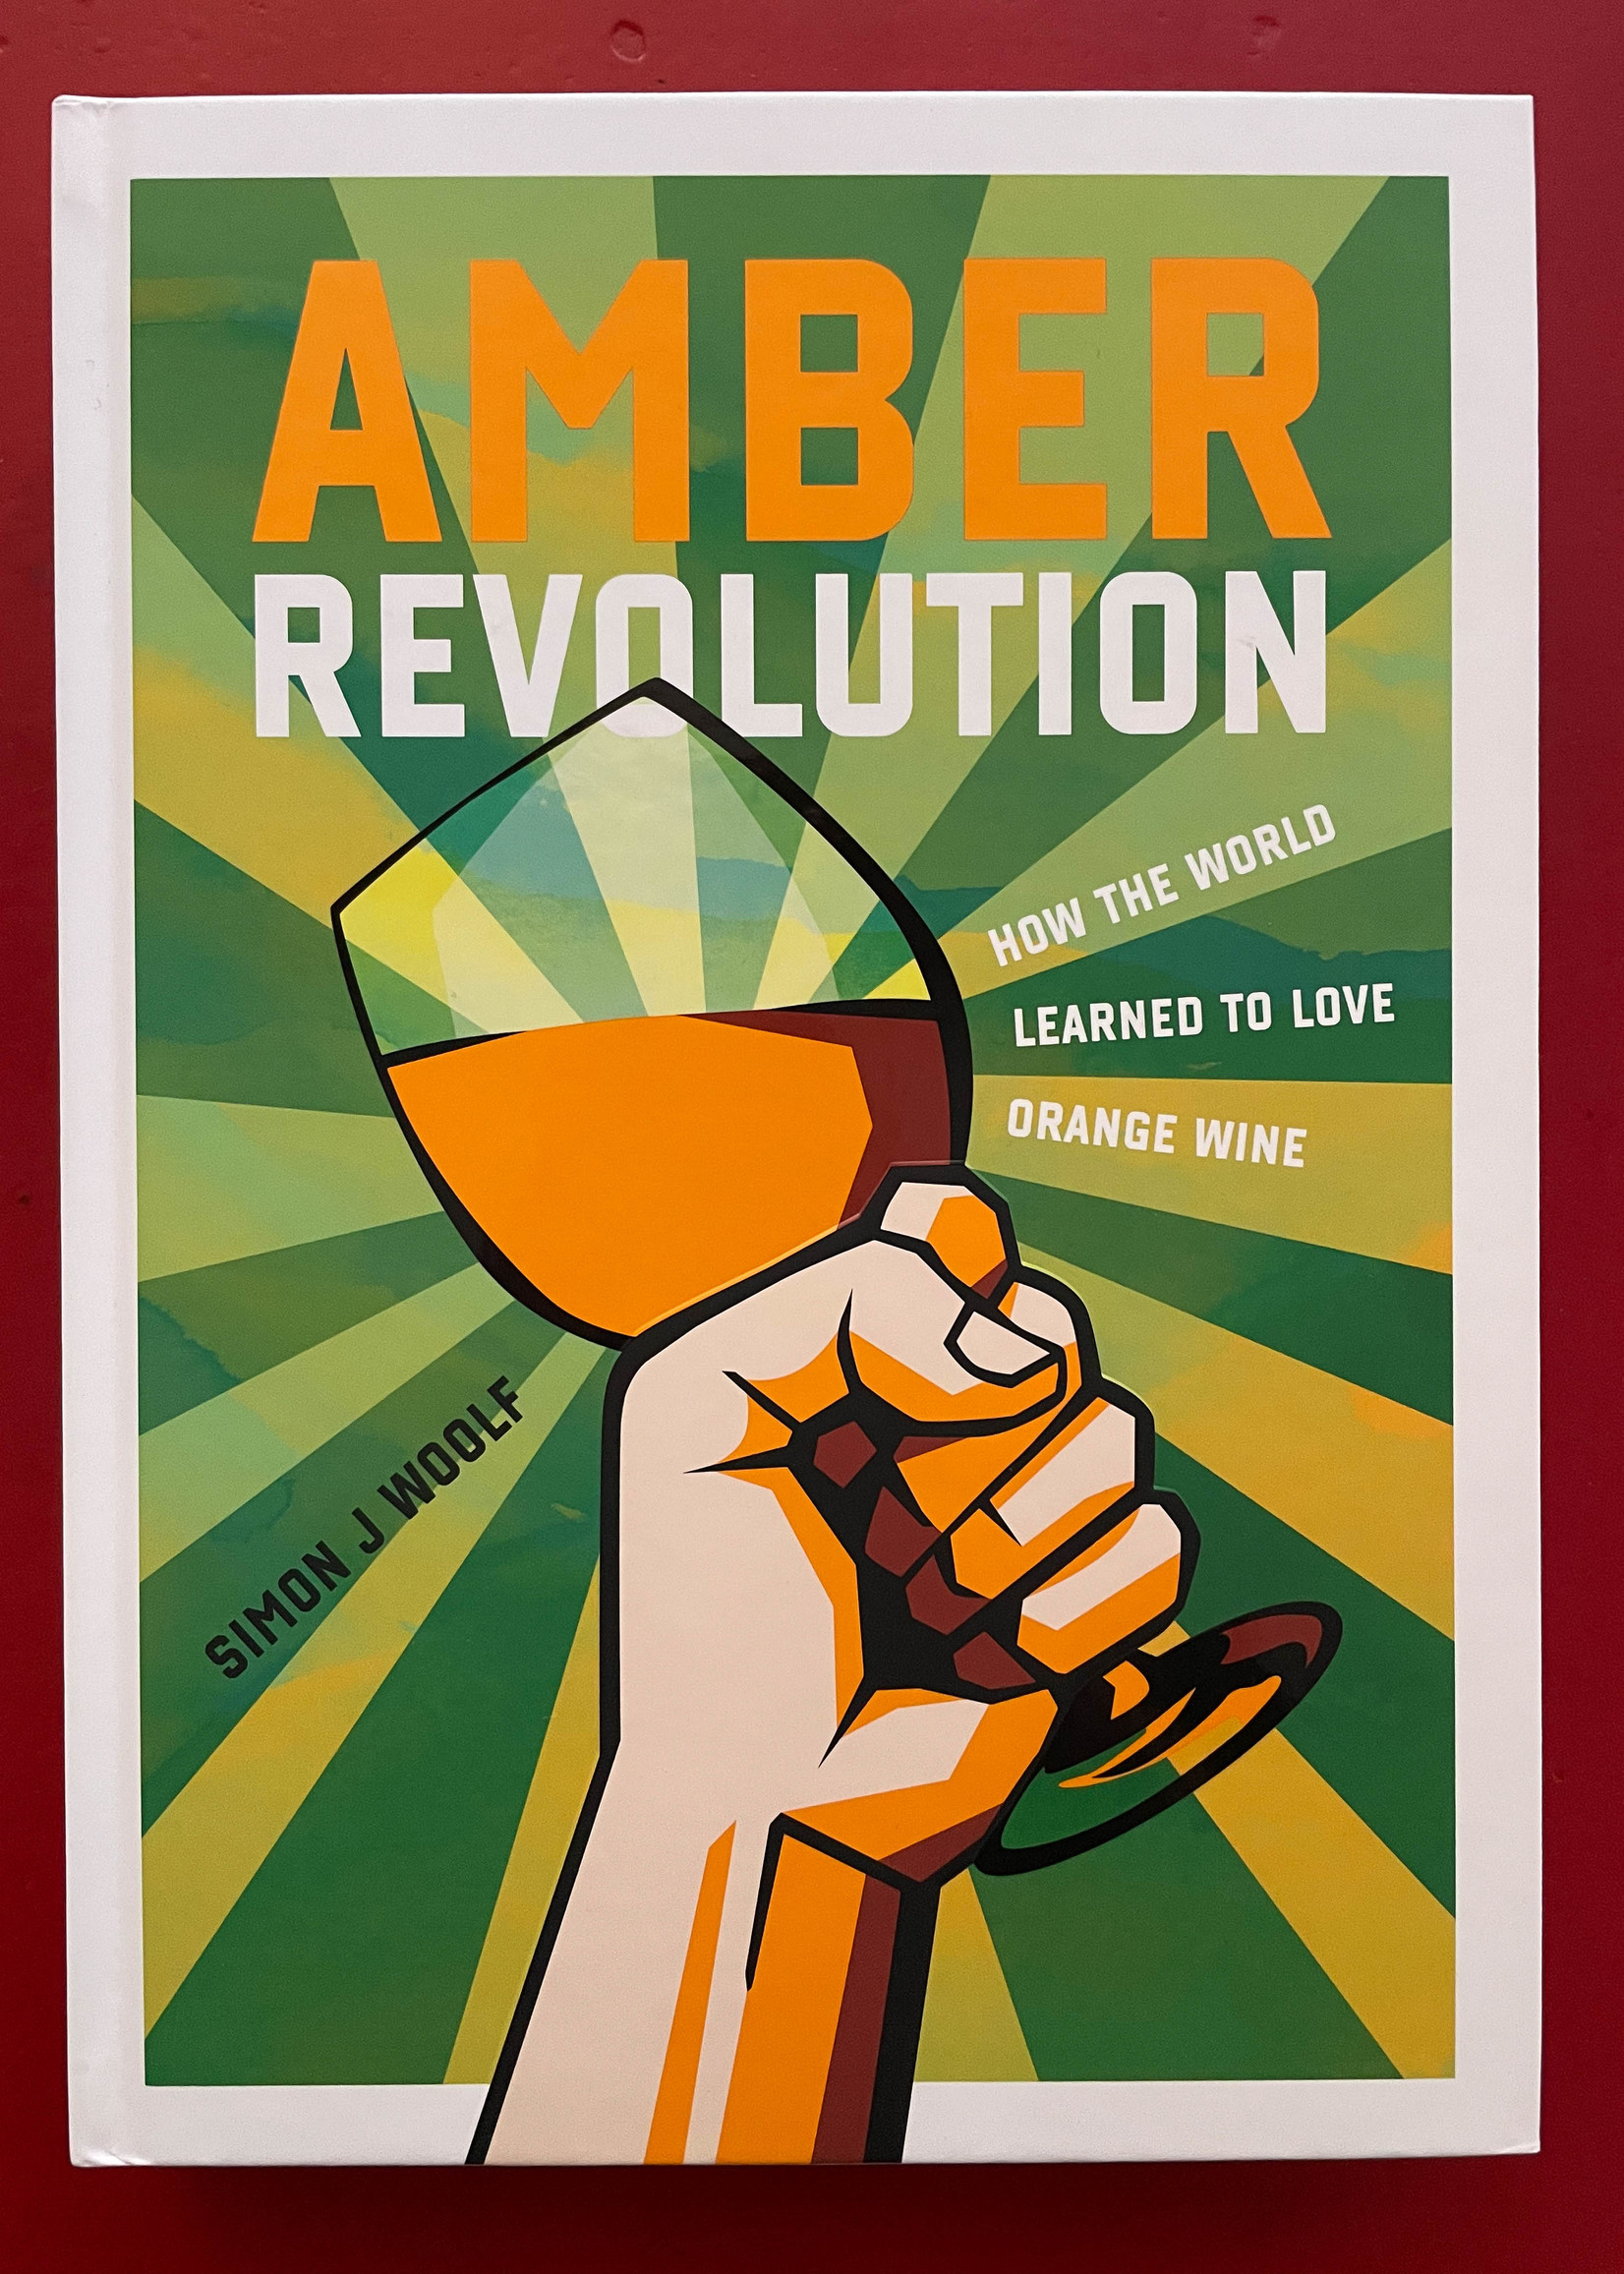 Morning Claret Productions Amber Revolution - How the world Learned to Love Orange Wine - Simon J. Woolf